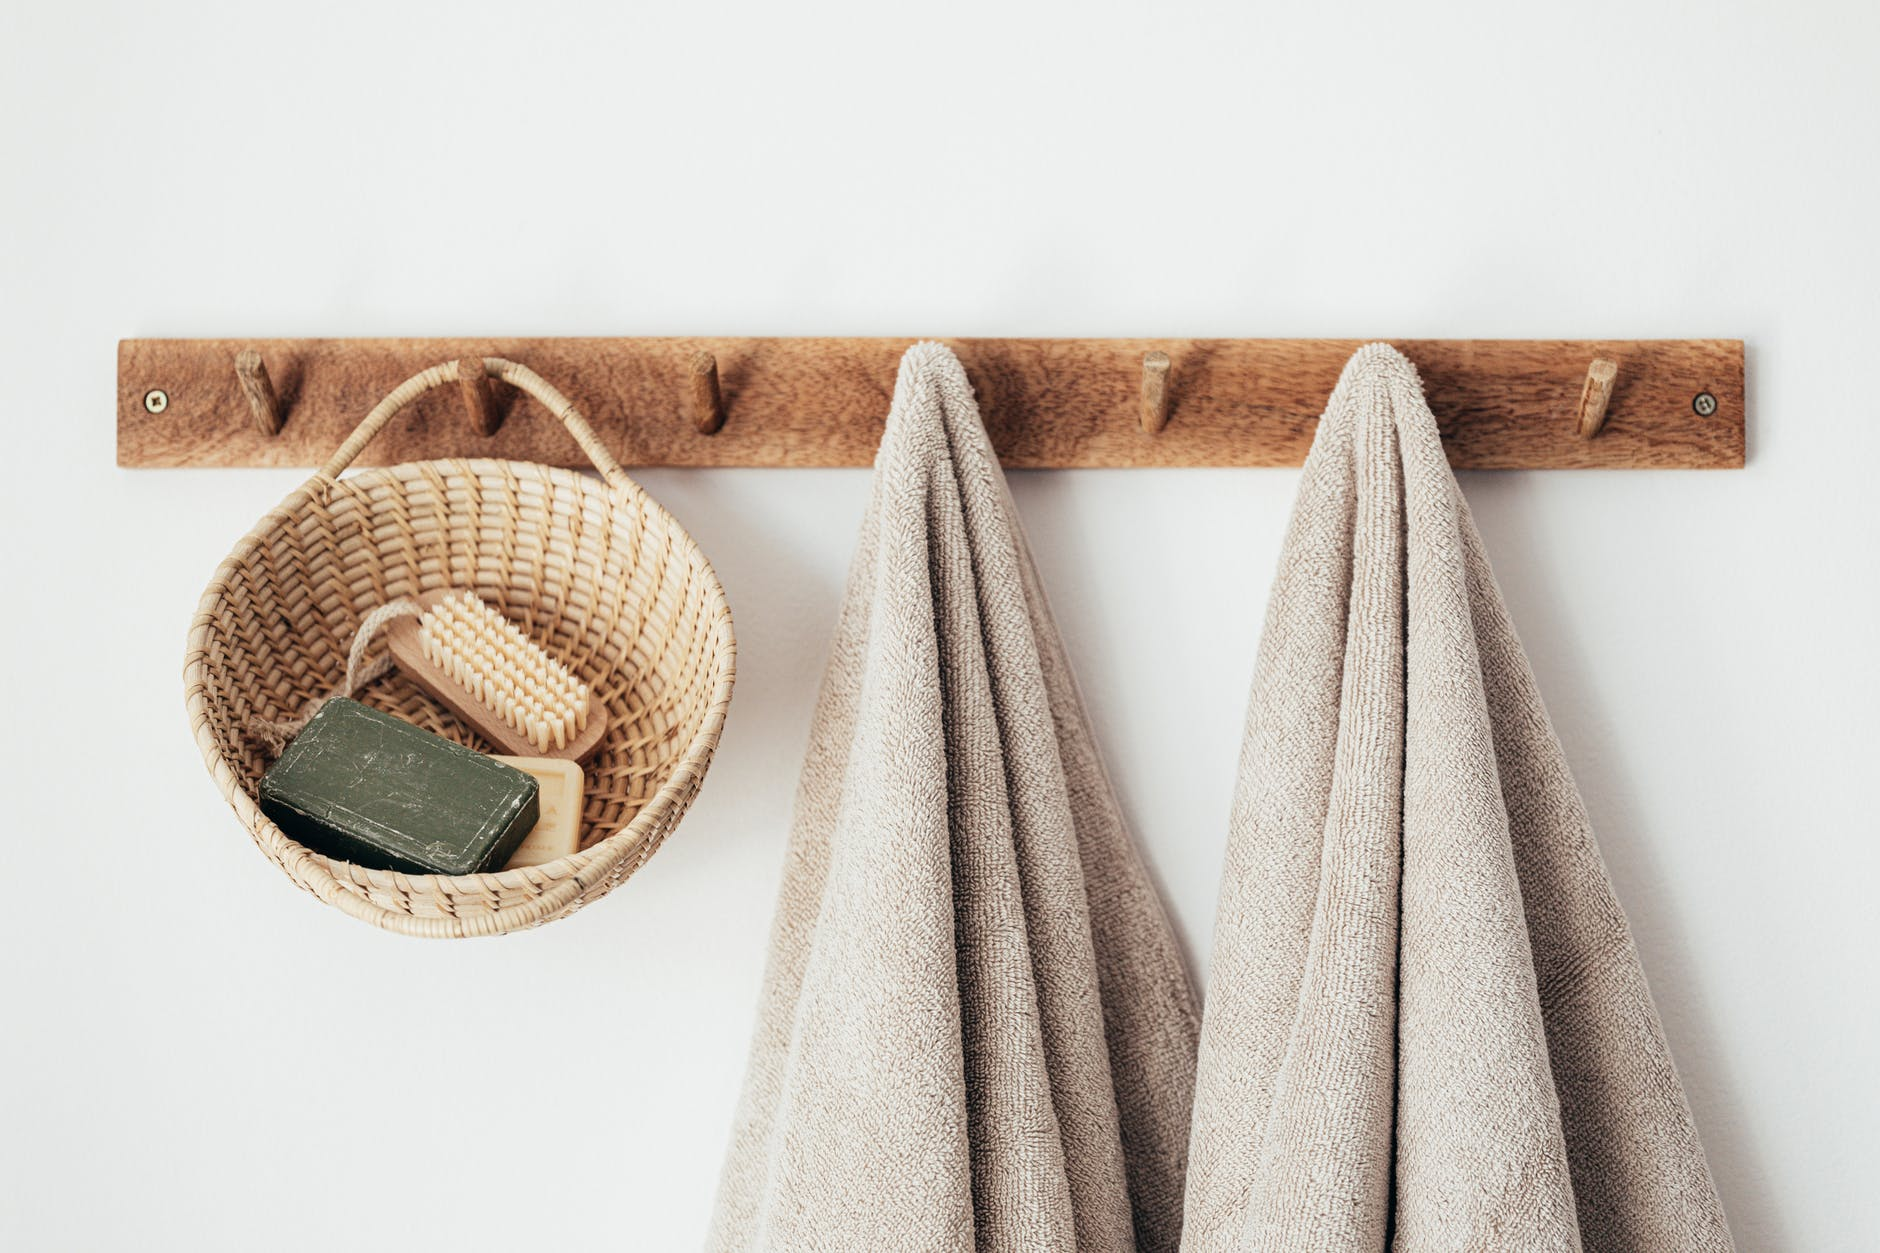 Some wooden hooks holding up some clothes and a wooden basket